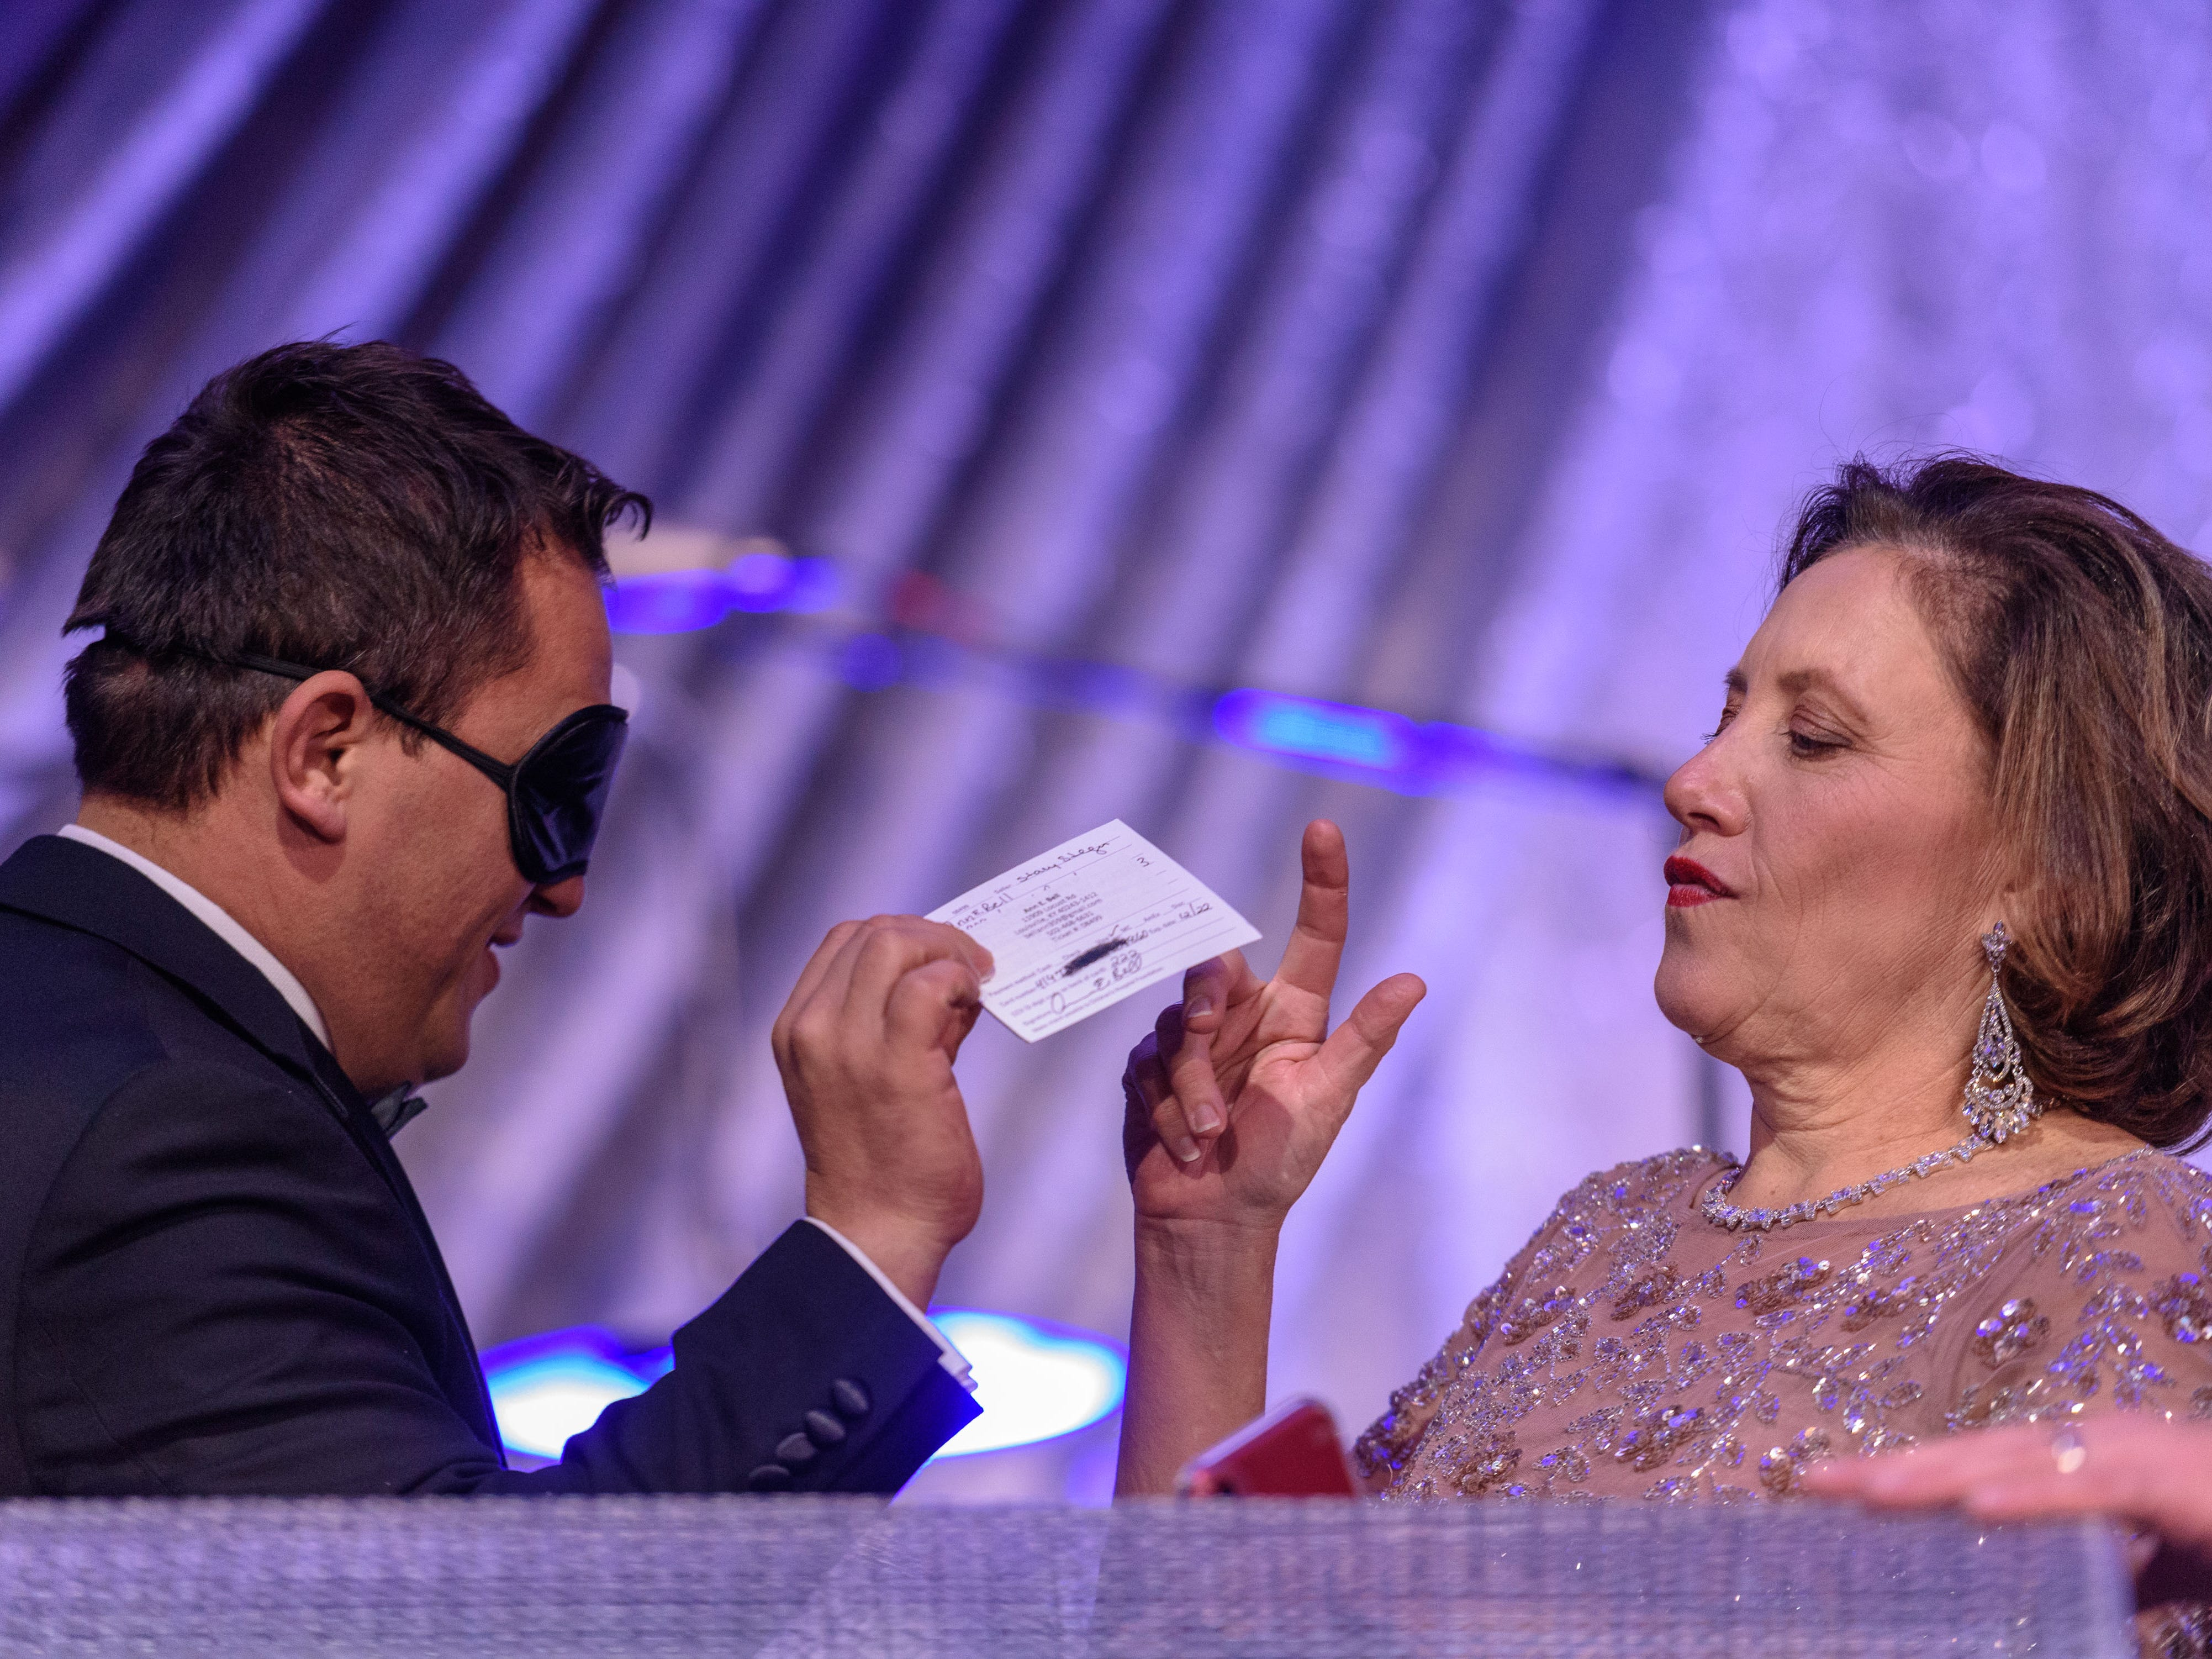 AdrianÊMiron draws the first winner for a 2019 BMW 2 Series convertible with $10,000 cash, Ann E. Bell, and gives it to Lynnie Meyer, Ed.D, Chief Development Officer, Norton Healthcare, at the Snow Ball Gala at the Omni Hotel, a benefit for the Jennifer Lawrence Cardiac Intensive Care Unit (CICU) at Norton ChildrenÕs Hospital. Nov. 17, 2018